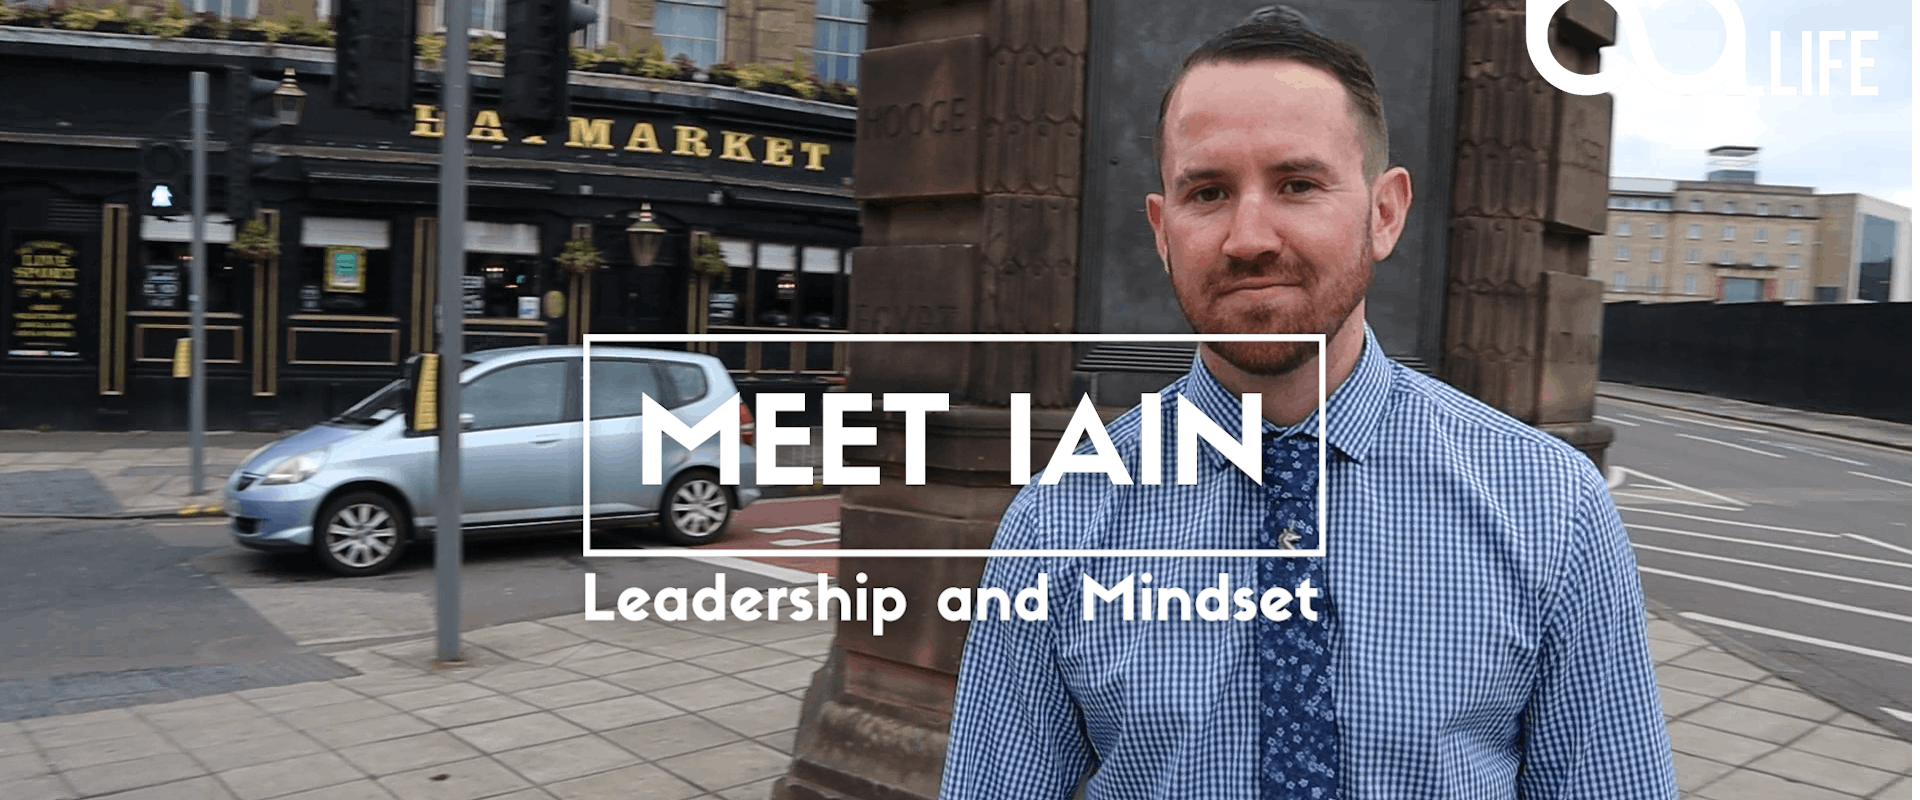 Meet Iain: Leadership and Mentality